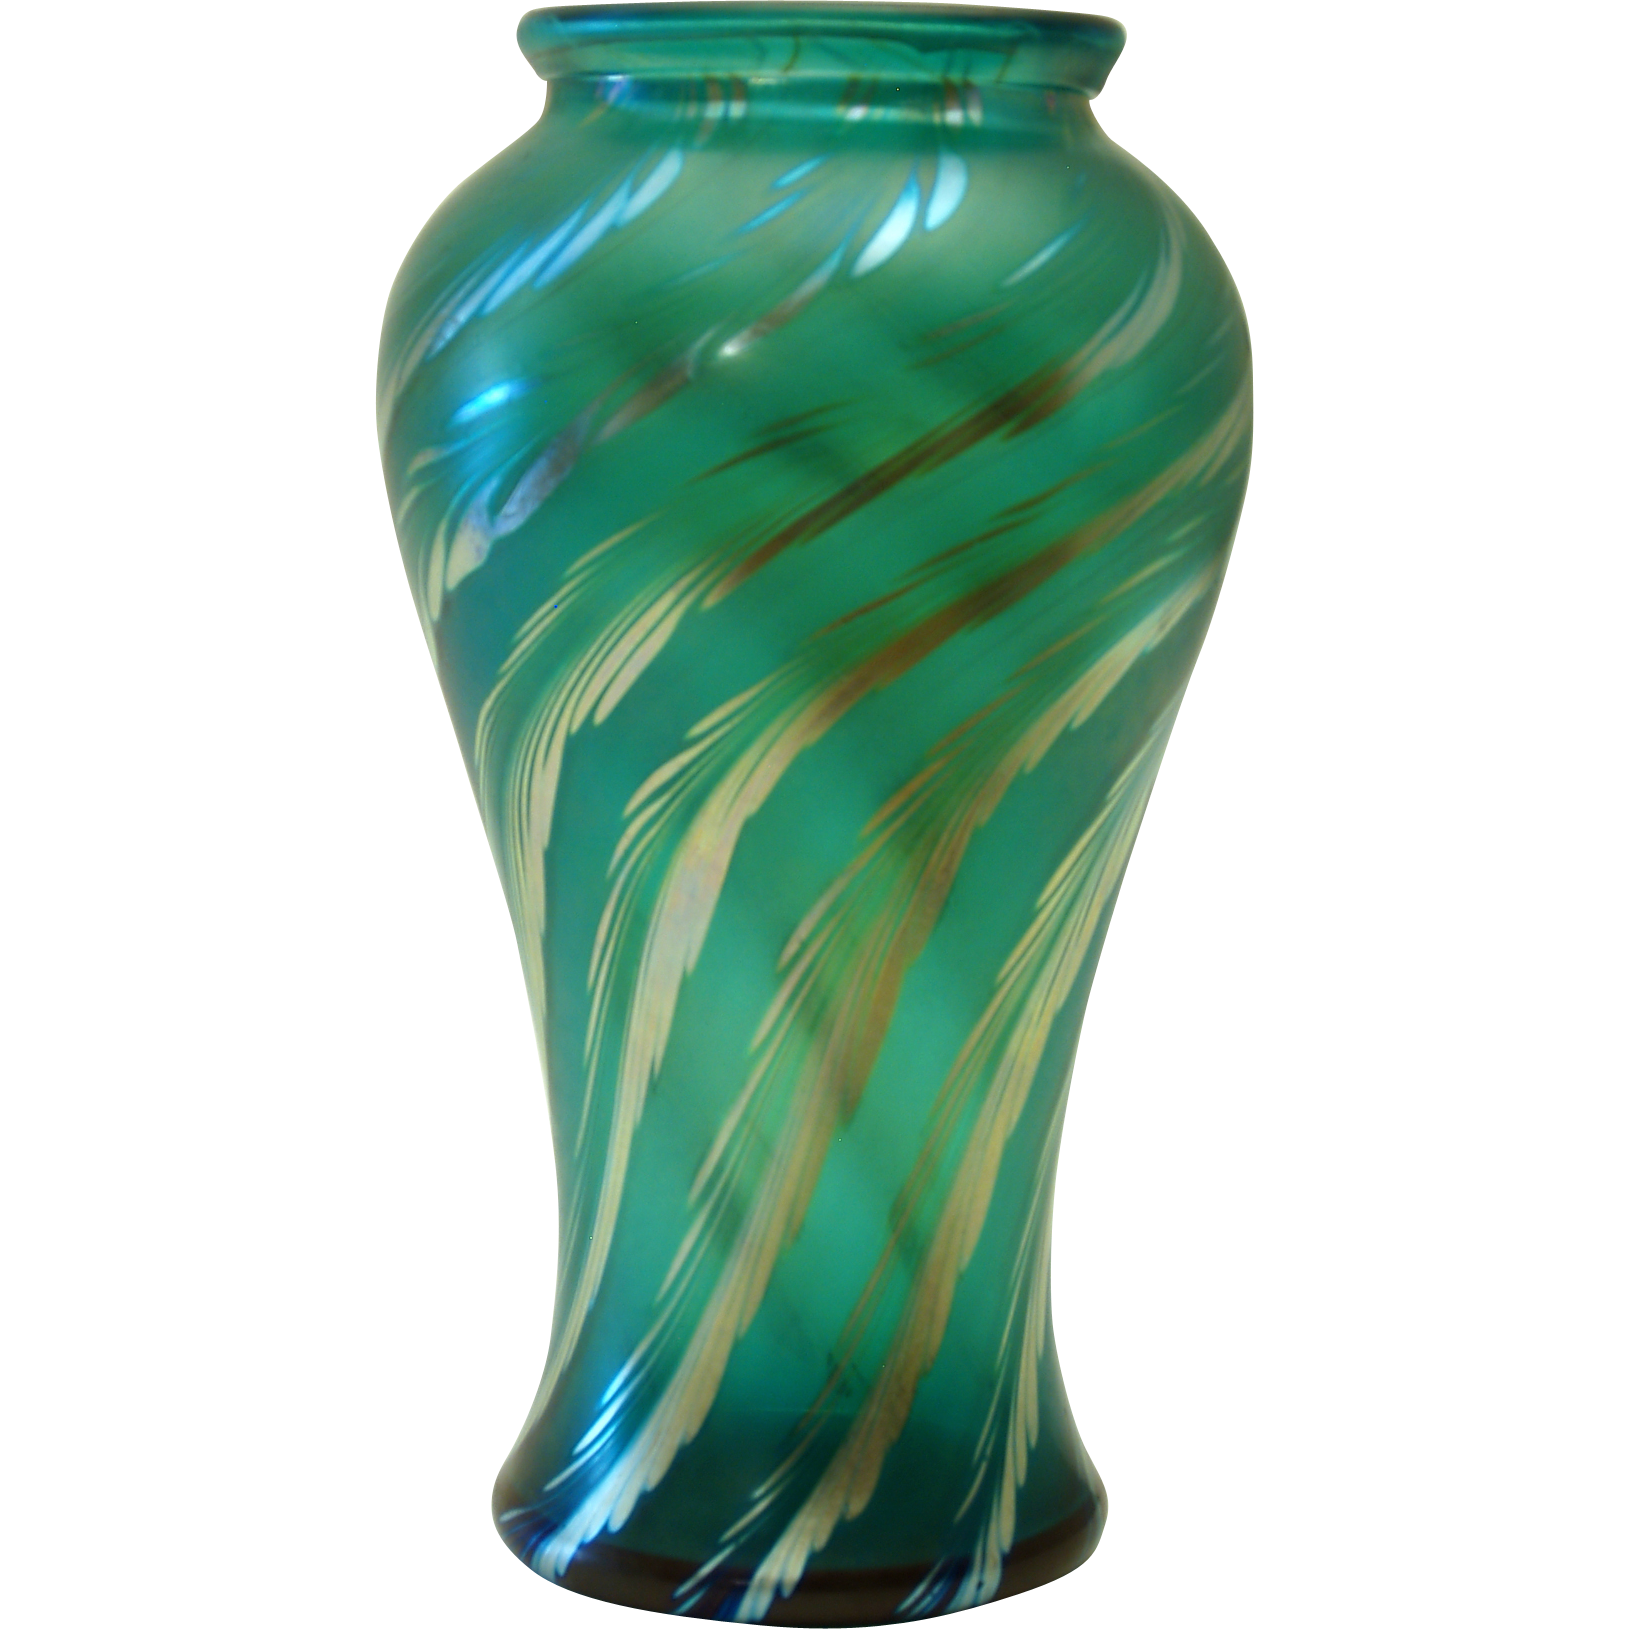 Correia Emerald Green Art Glass Vase From Melange Orange